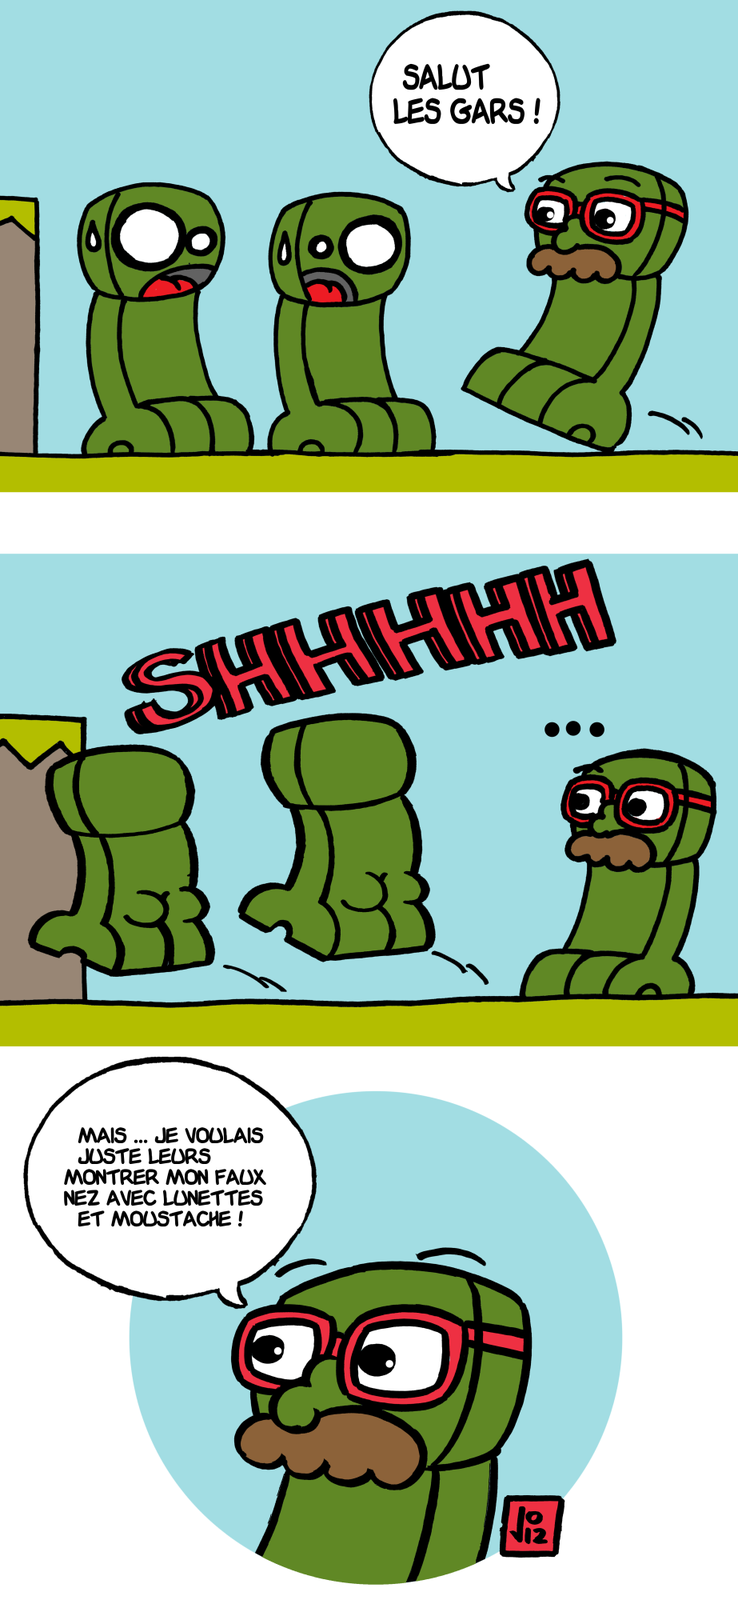 creeper-story5-2-copy.png